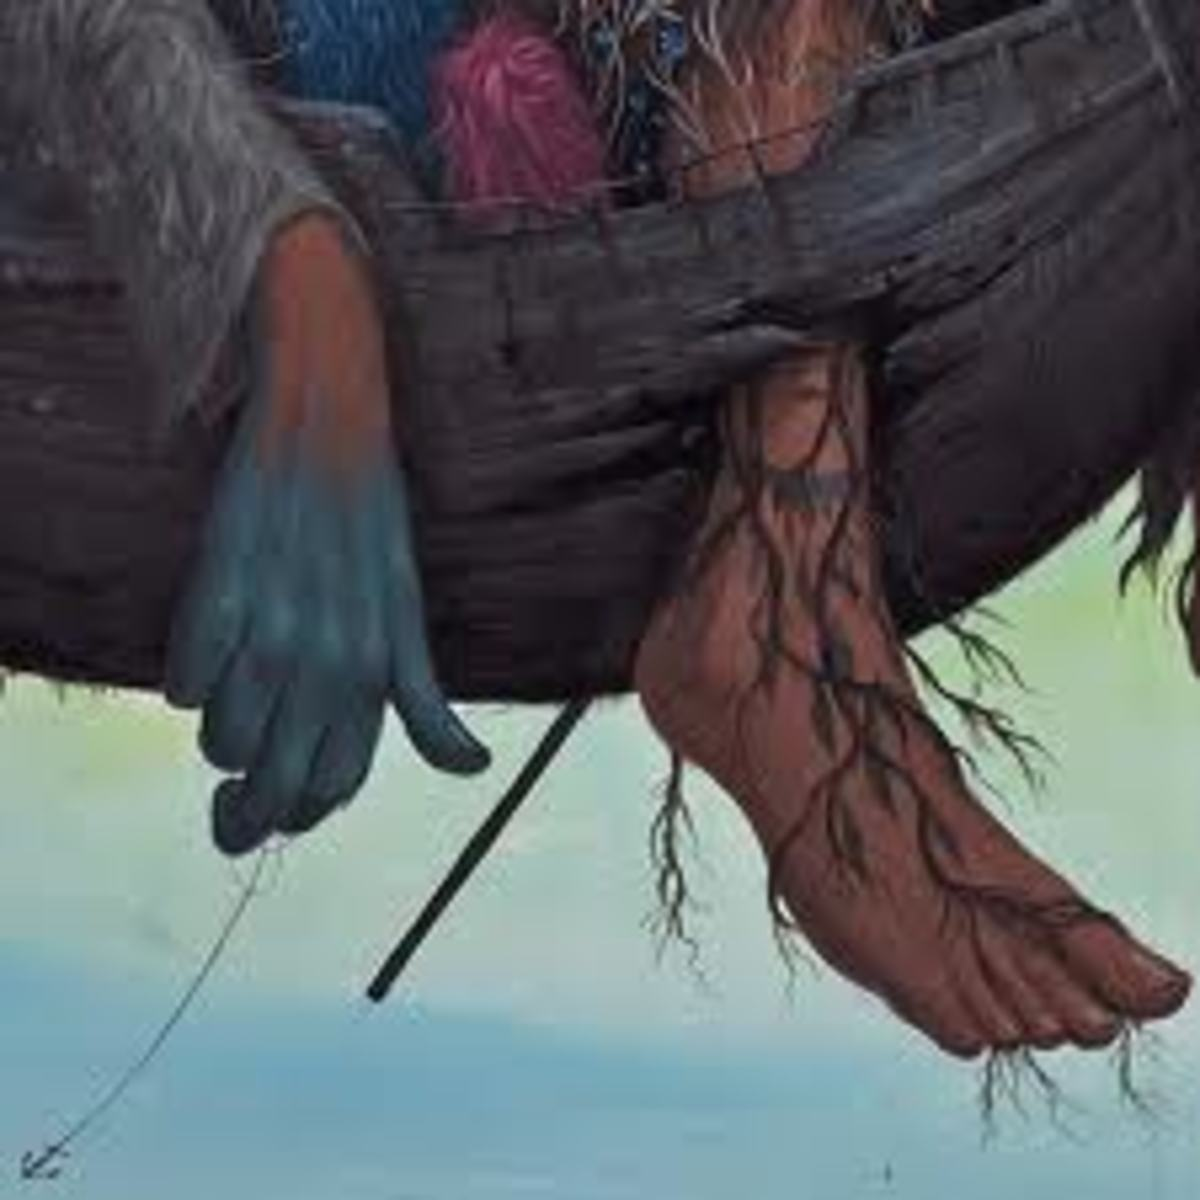 a close up of the details, showing the remaining humanity of the creature.